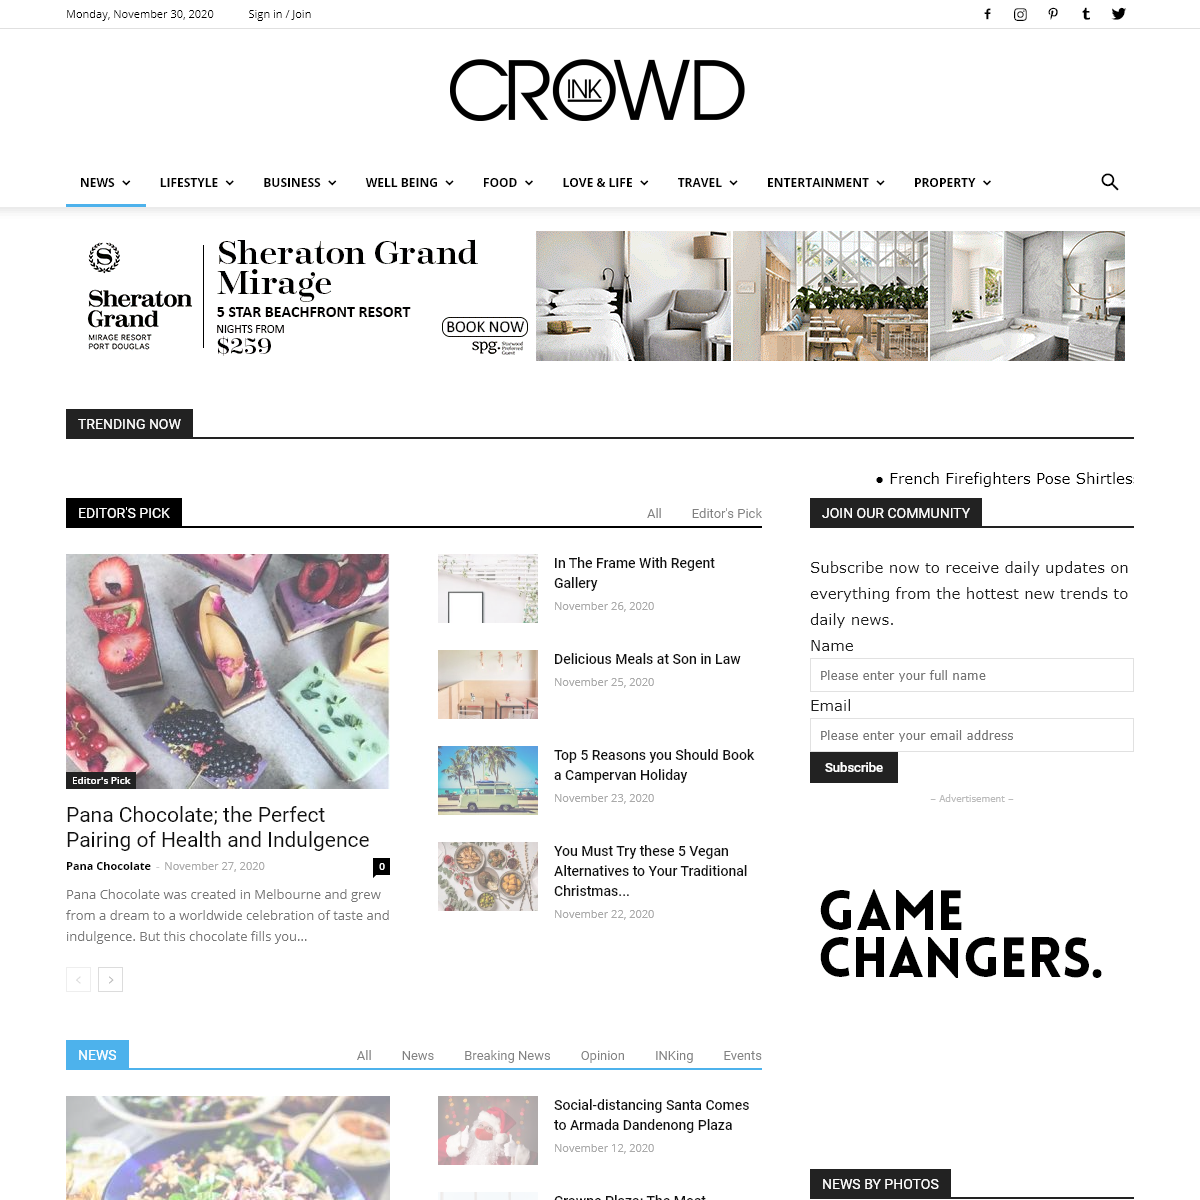 CrowdInk - Breaking News, Trends & Insights